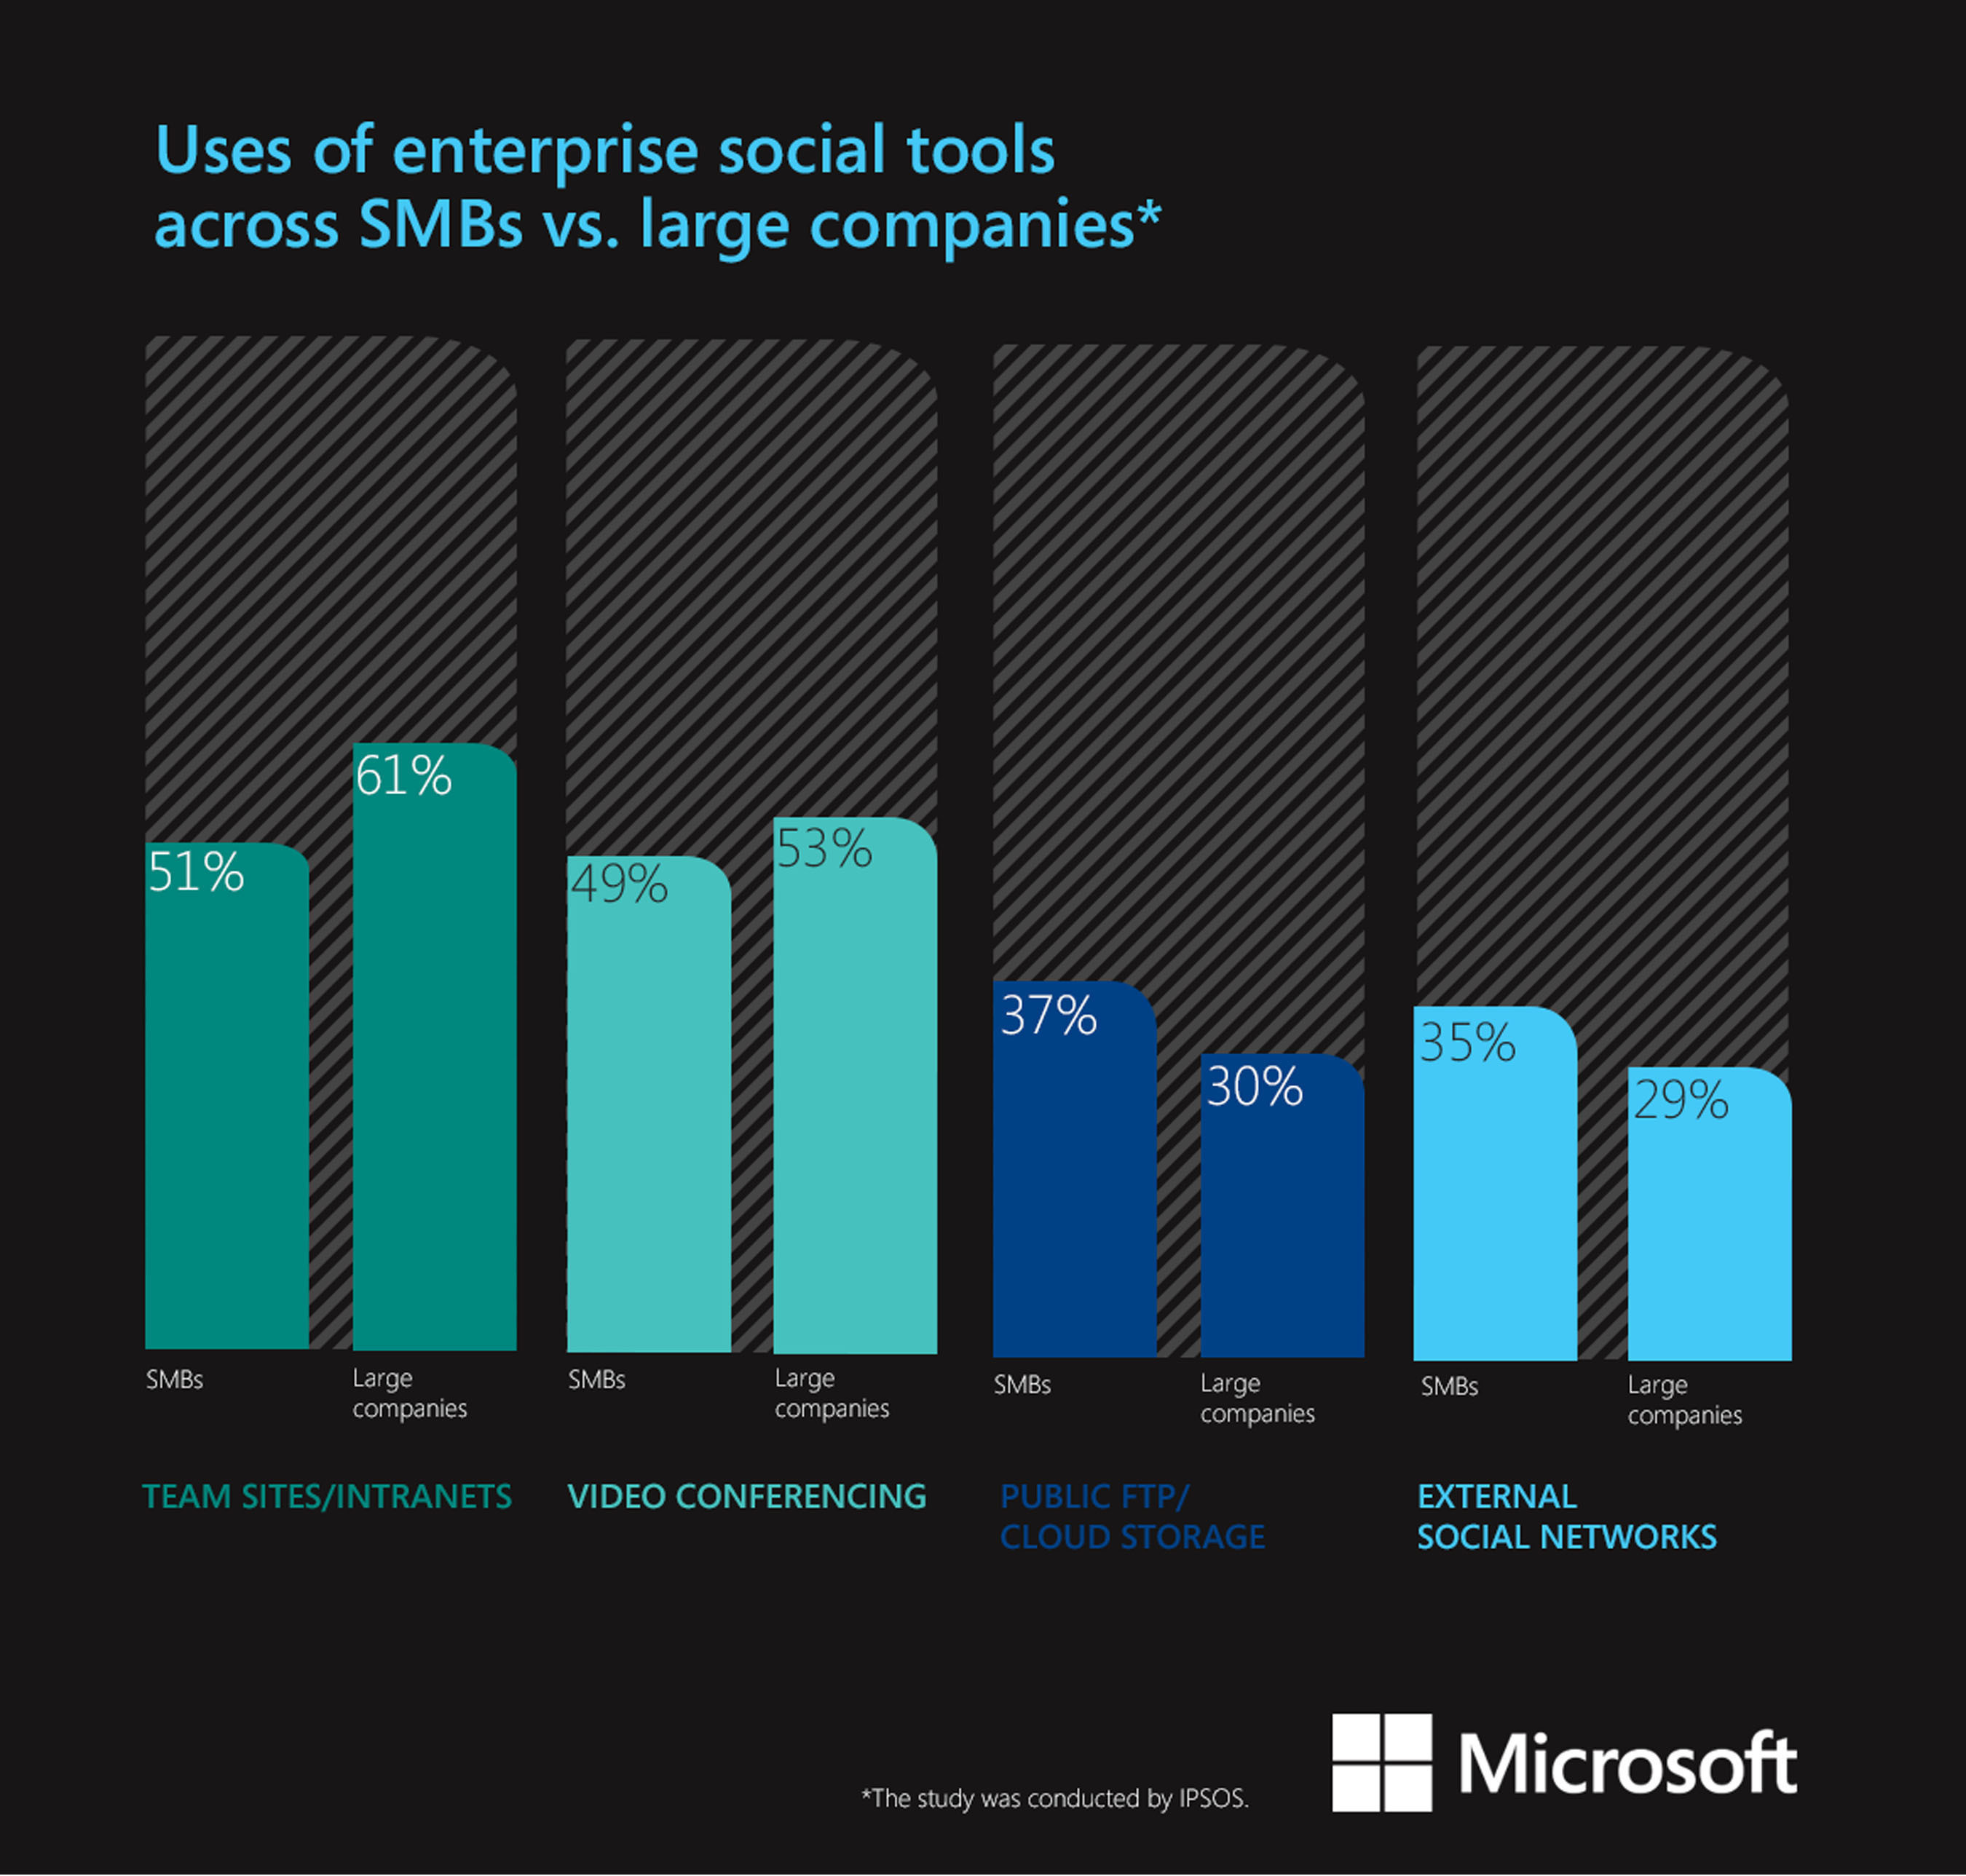 SMBs more supportive of external social tools for workplace collaboration, reports new Microsoft